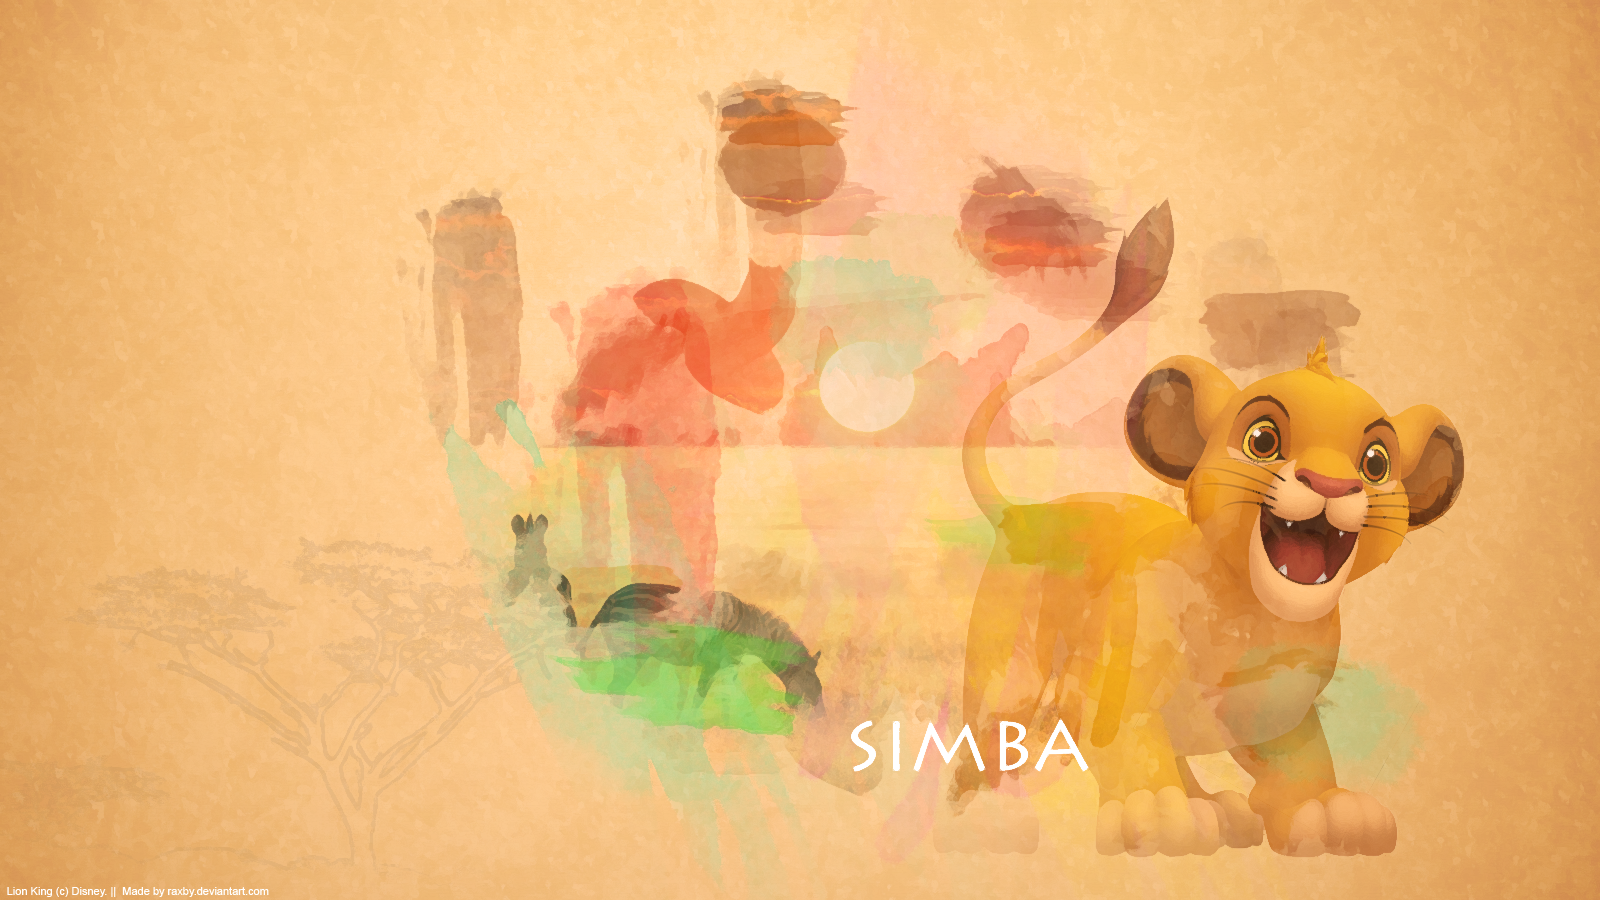 Simba Watercolour Wallpaper by Raxby